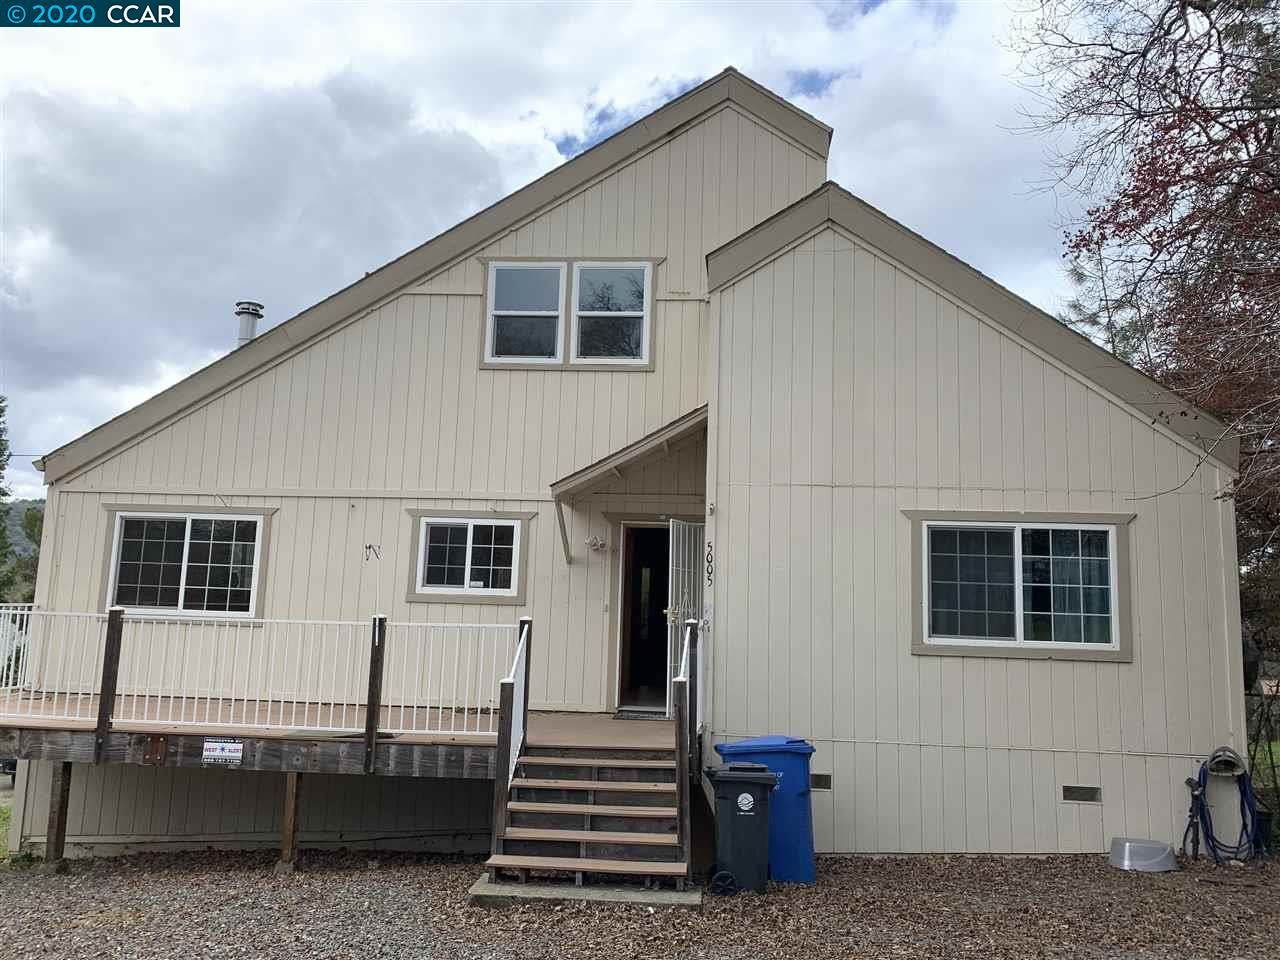 Photo for 5005 KETT Ave., CLEARLAKE, CA 95422 (MLS # 40900137)